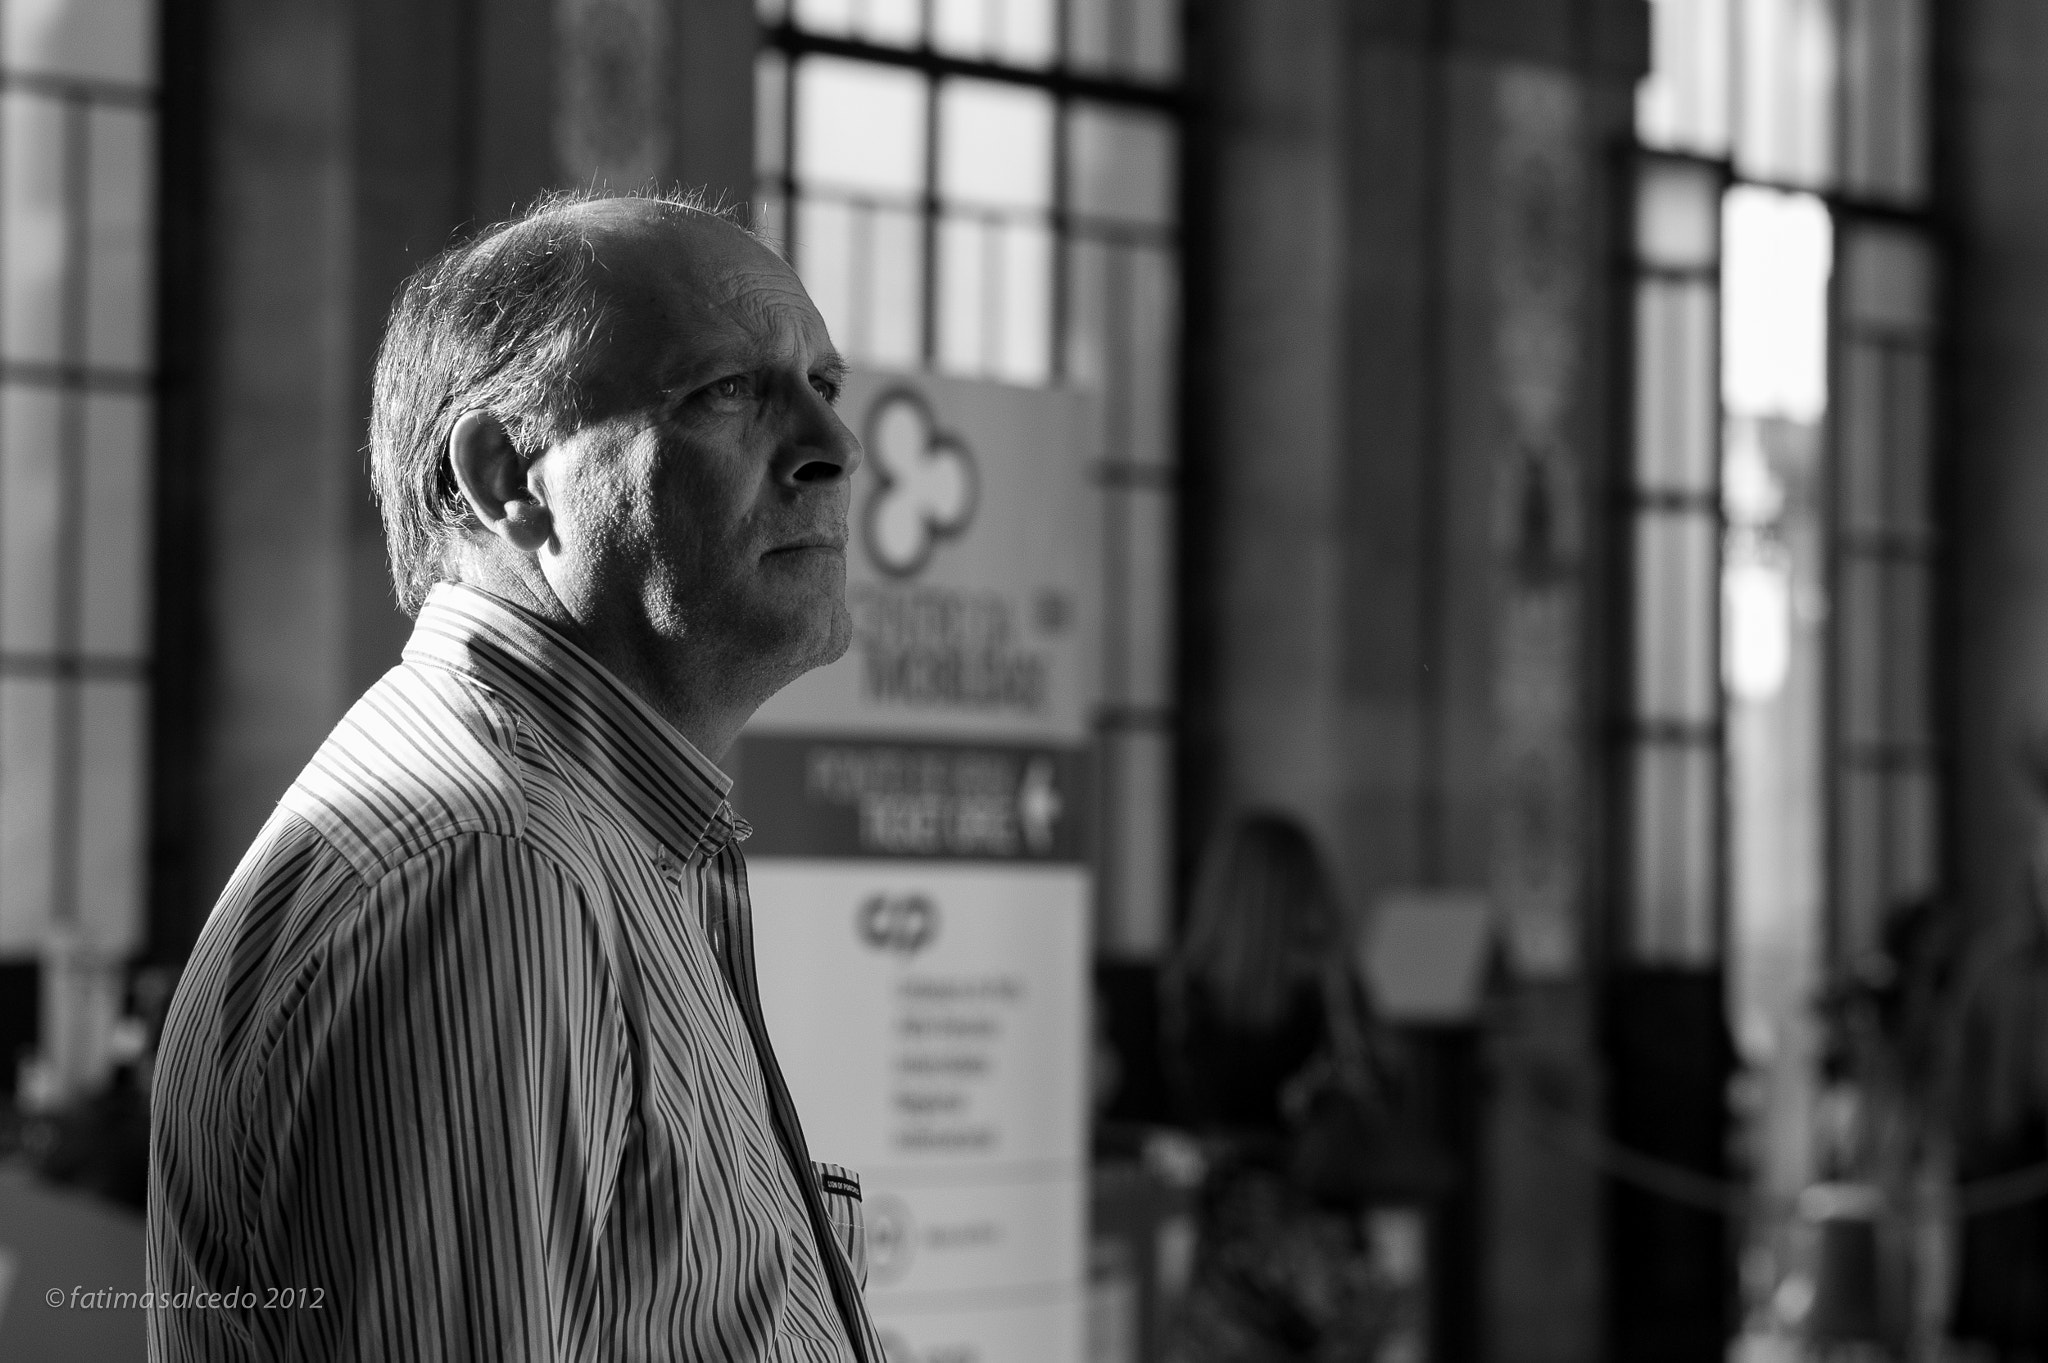 Photograph at the train station... by fatima salcedo on 500px